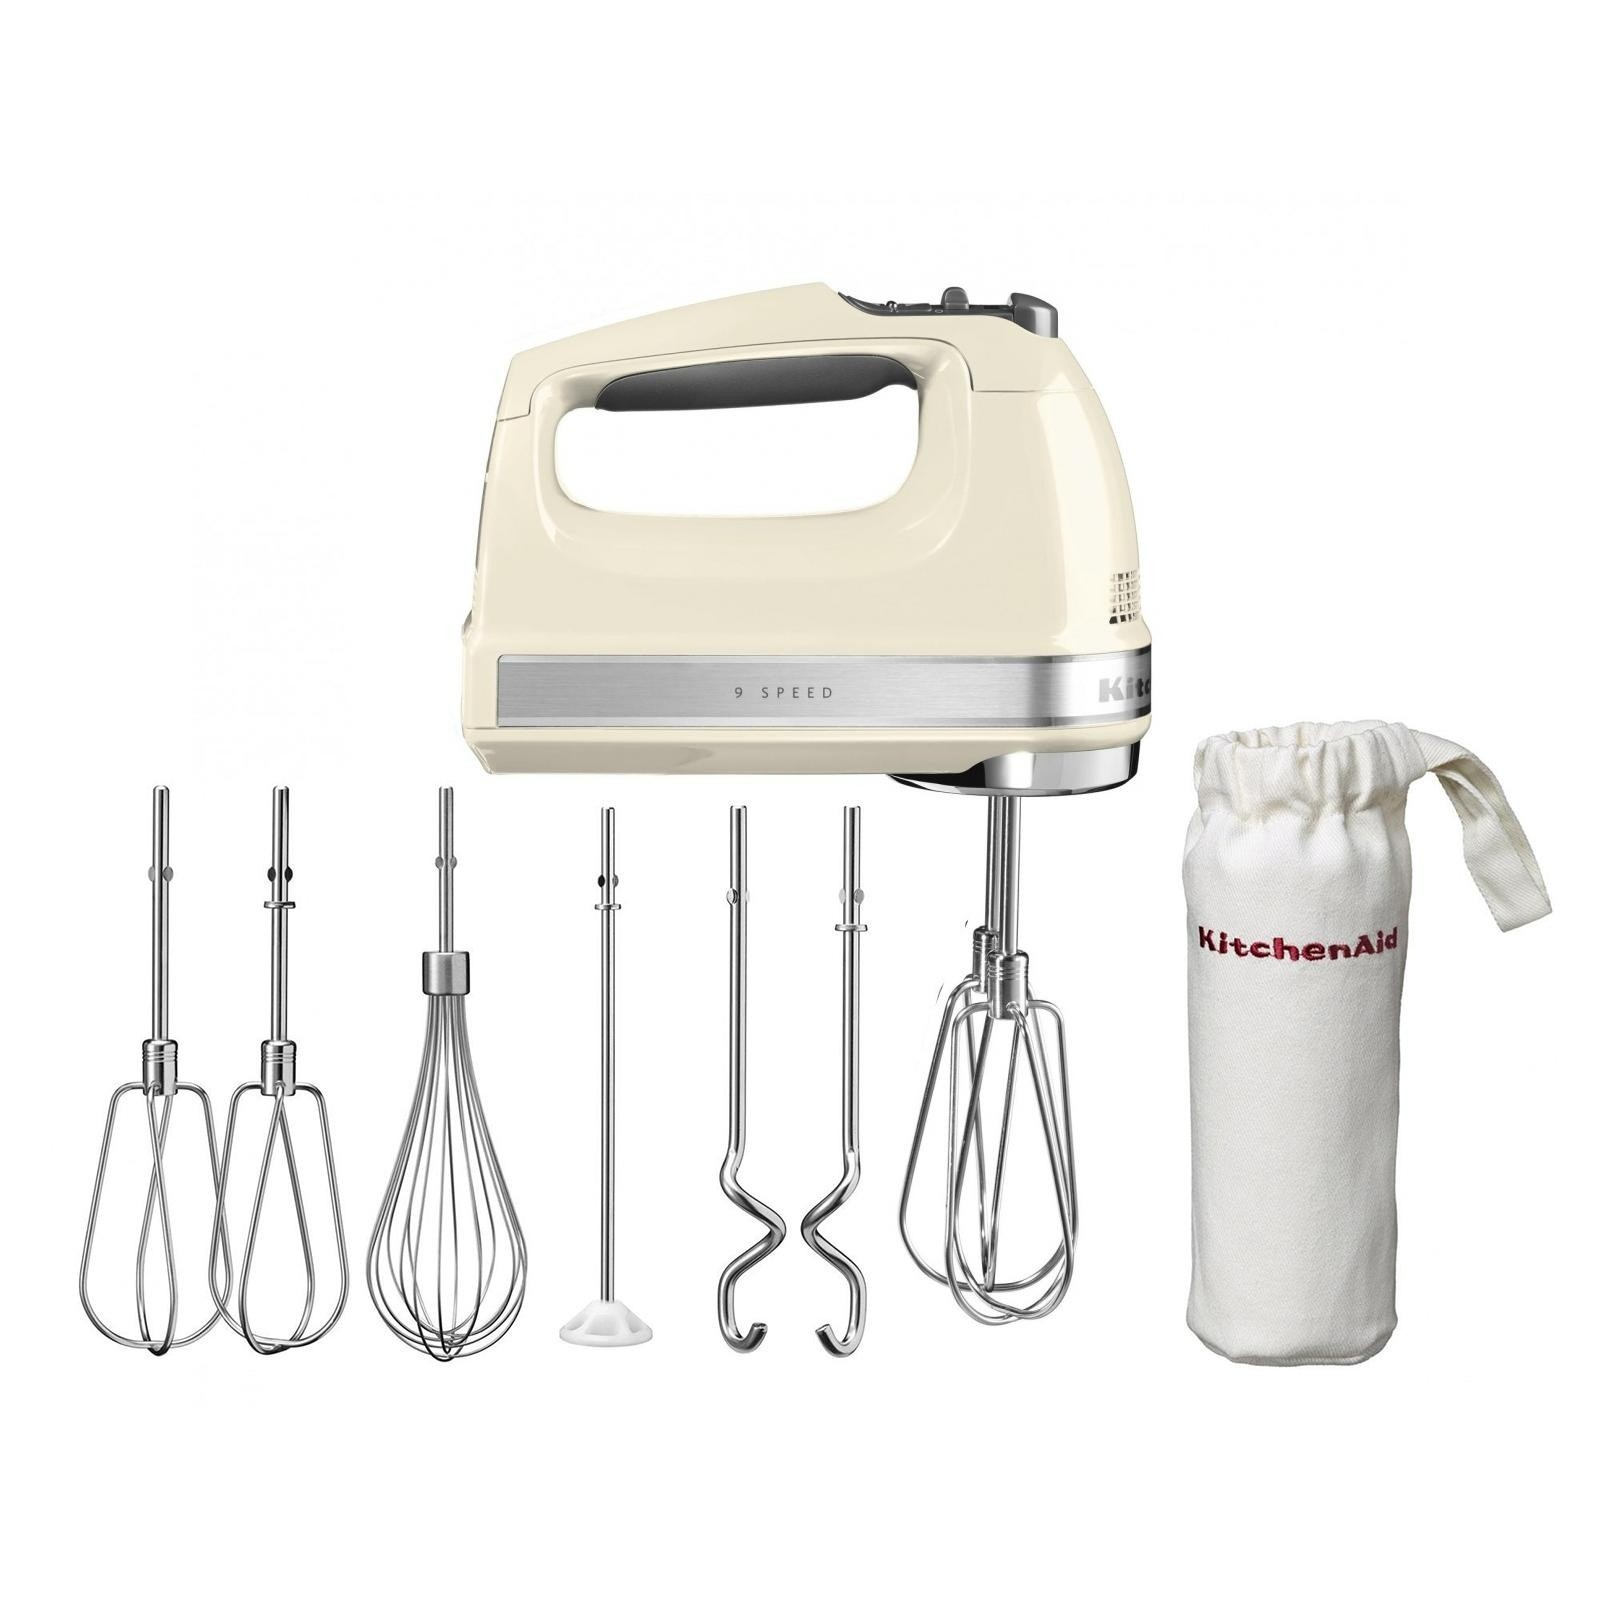 Hape Küchenmaschine Zubehör Kitchenaid Classic - The Homey Design